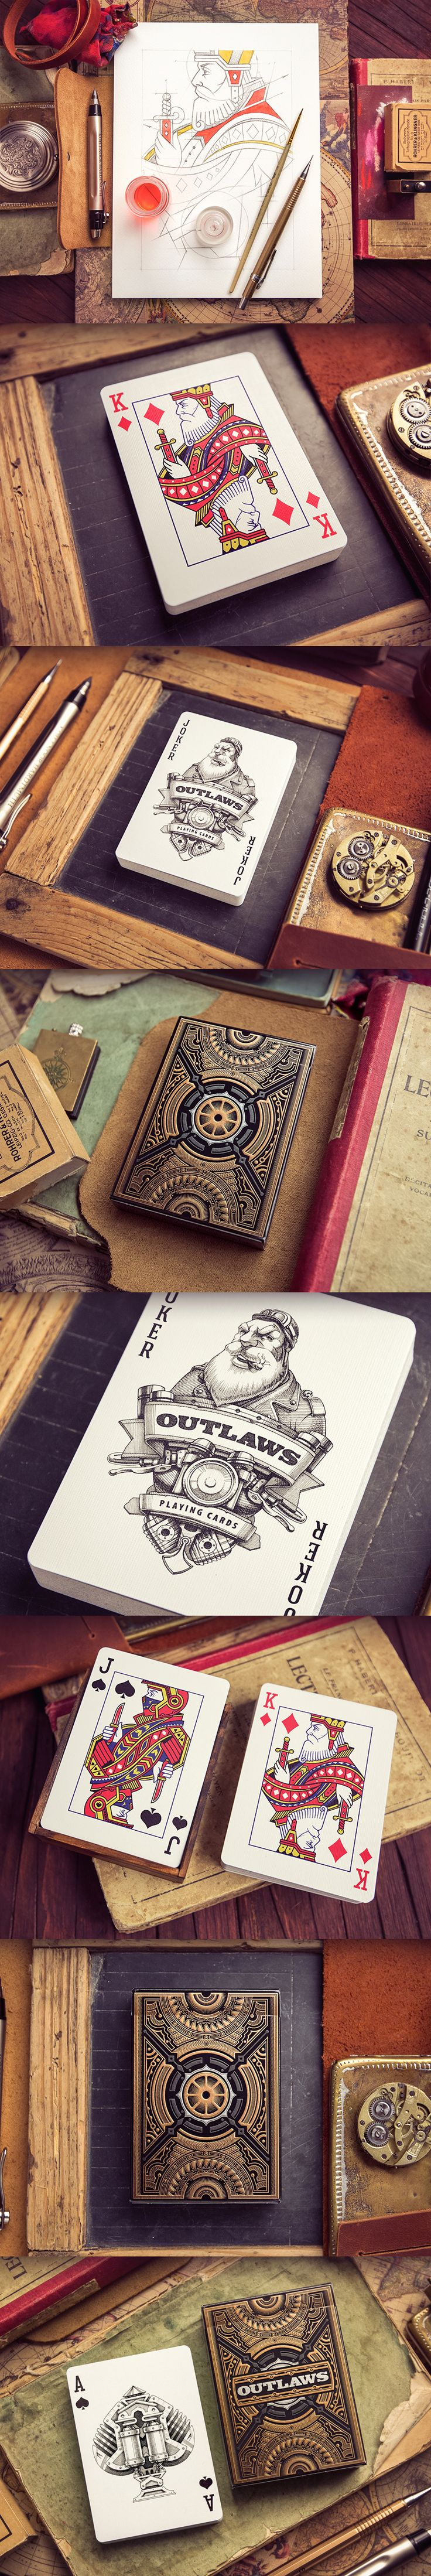 Playing cards outlaws deck, dribbble, Creative Mints, illustration, pencil, drawing, process